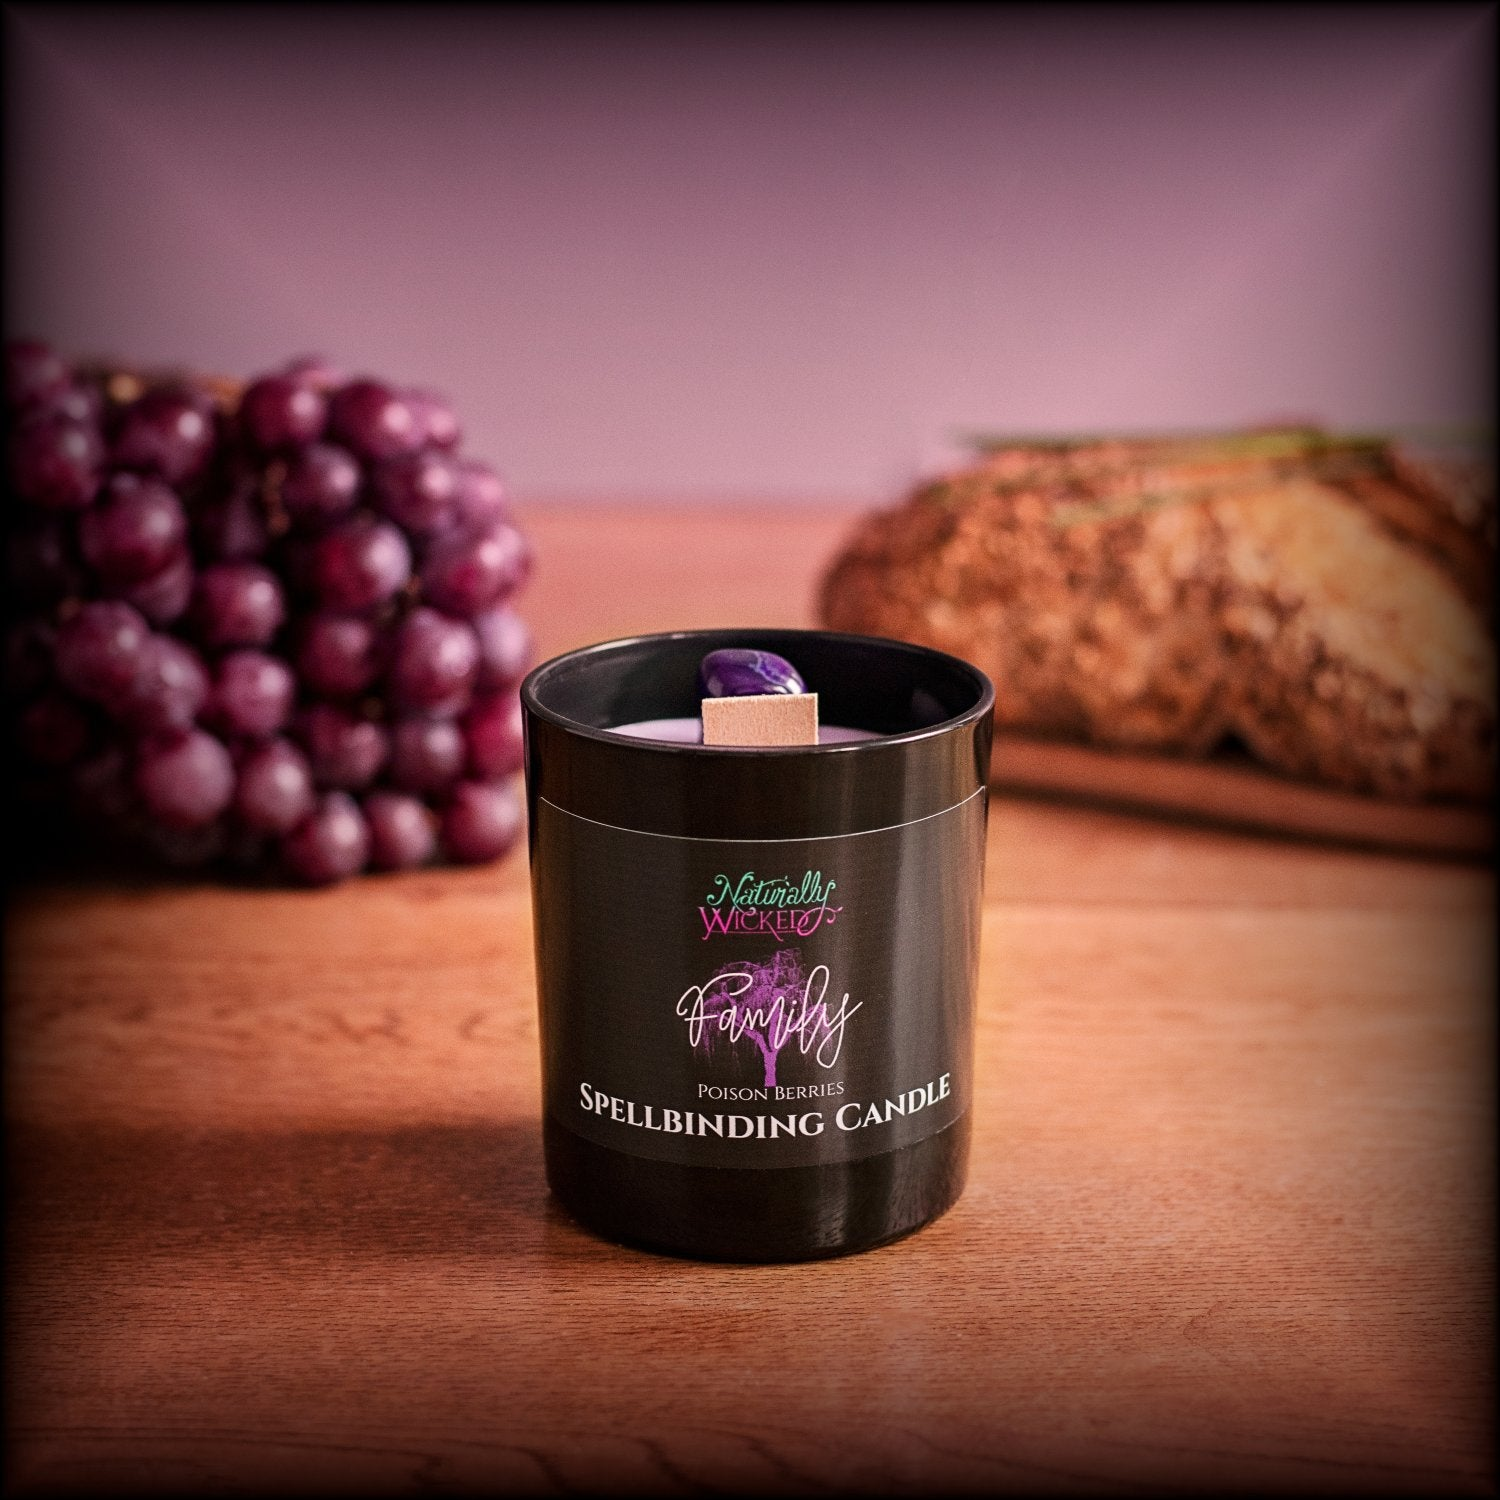 Naturally Wicked Spellbinding Family Candle With Bright Purple Crystal Sits In Front Of Purple Grapes & Home Cooked Bread